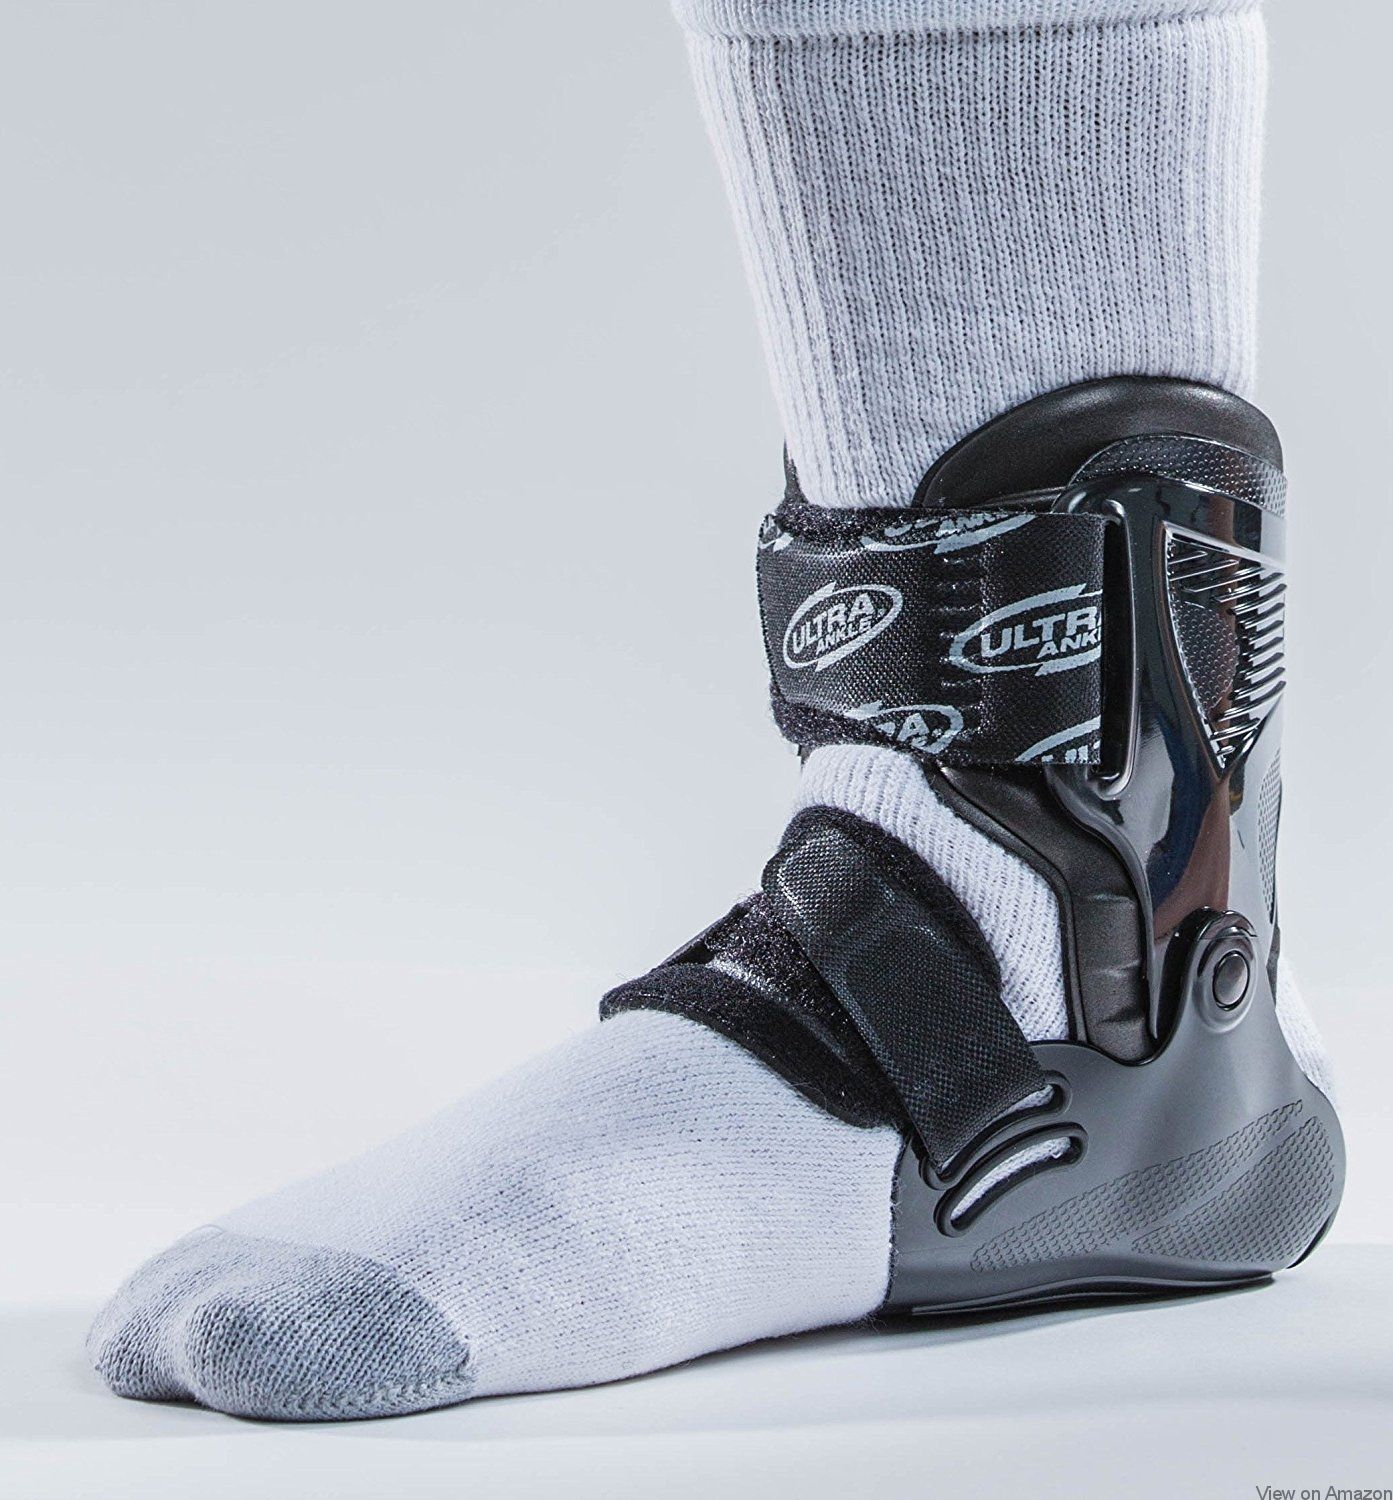 Cool Top 10 Best Volley Ankle Braces In 2017 Reviews Check More At Http Www Hqtext Com Top10 Best Volley Ank Ankle Braces Sprained Ankle Ankle Foot Orthosis